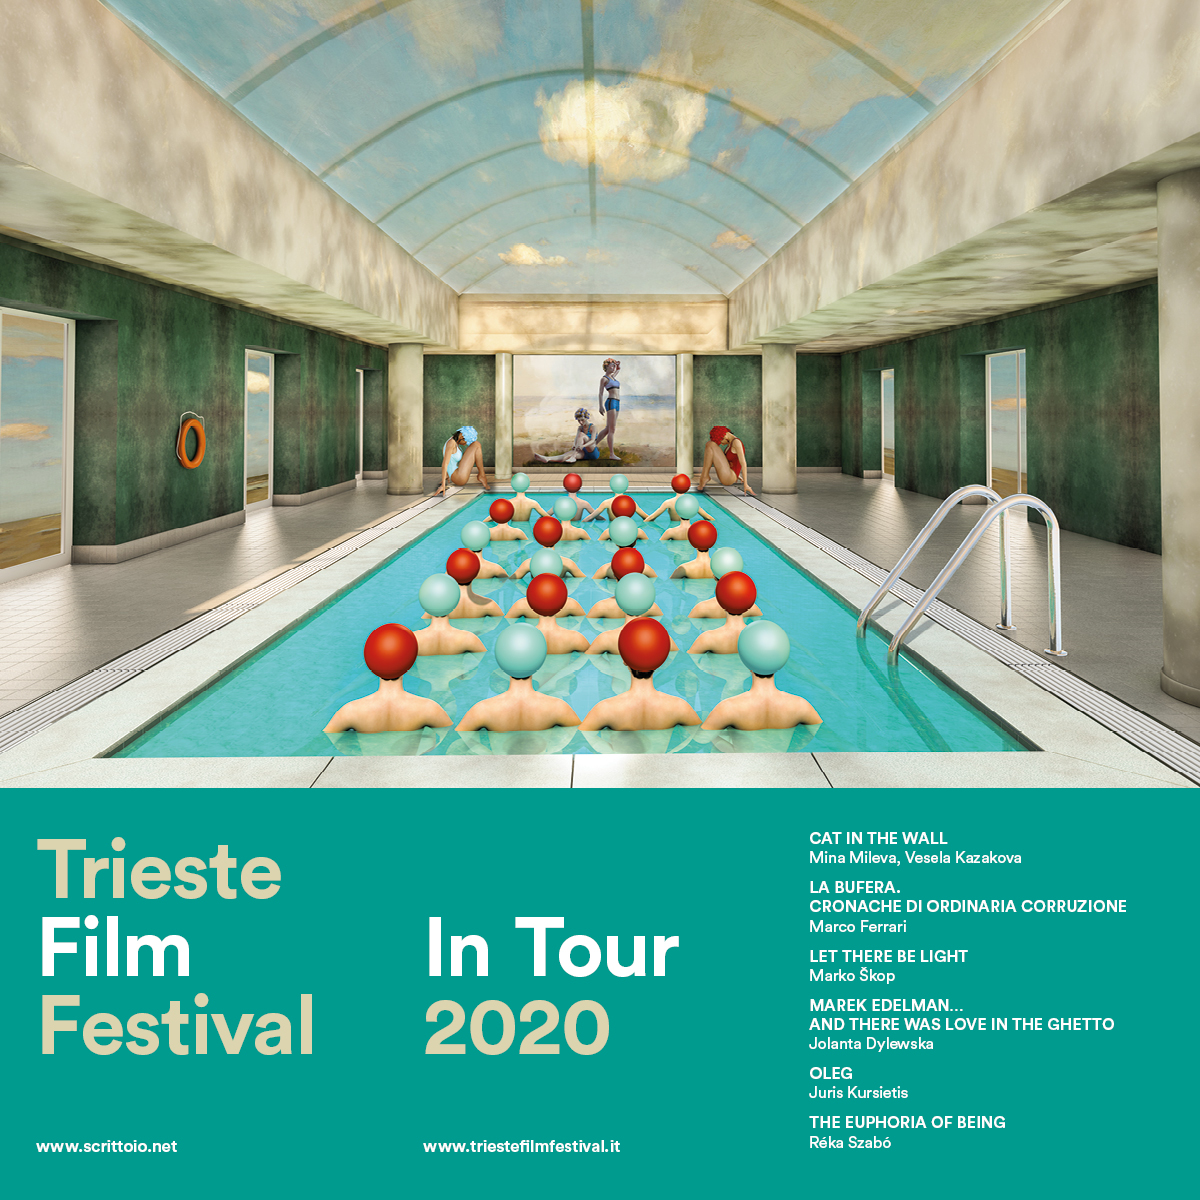 Trieste Film Festival in Tour 2020